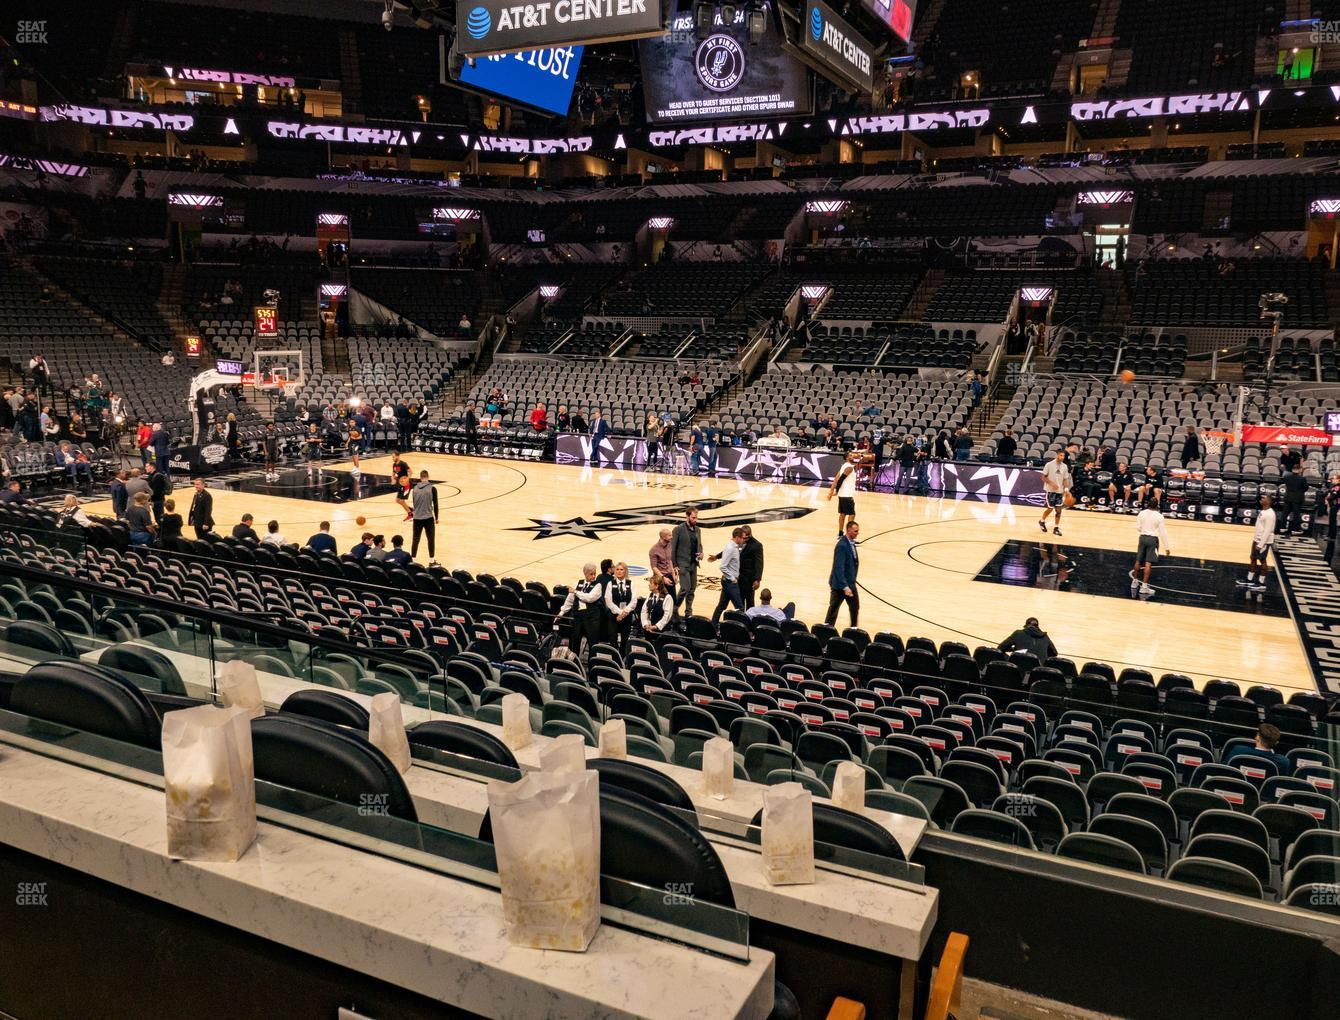 San Antonio Spurs at AT&T Center Super Box 2 B View